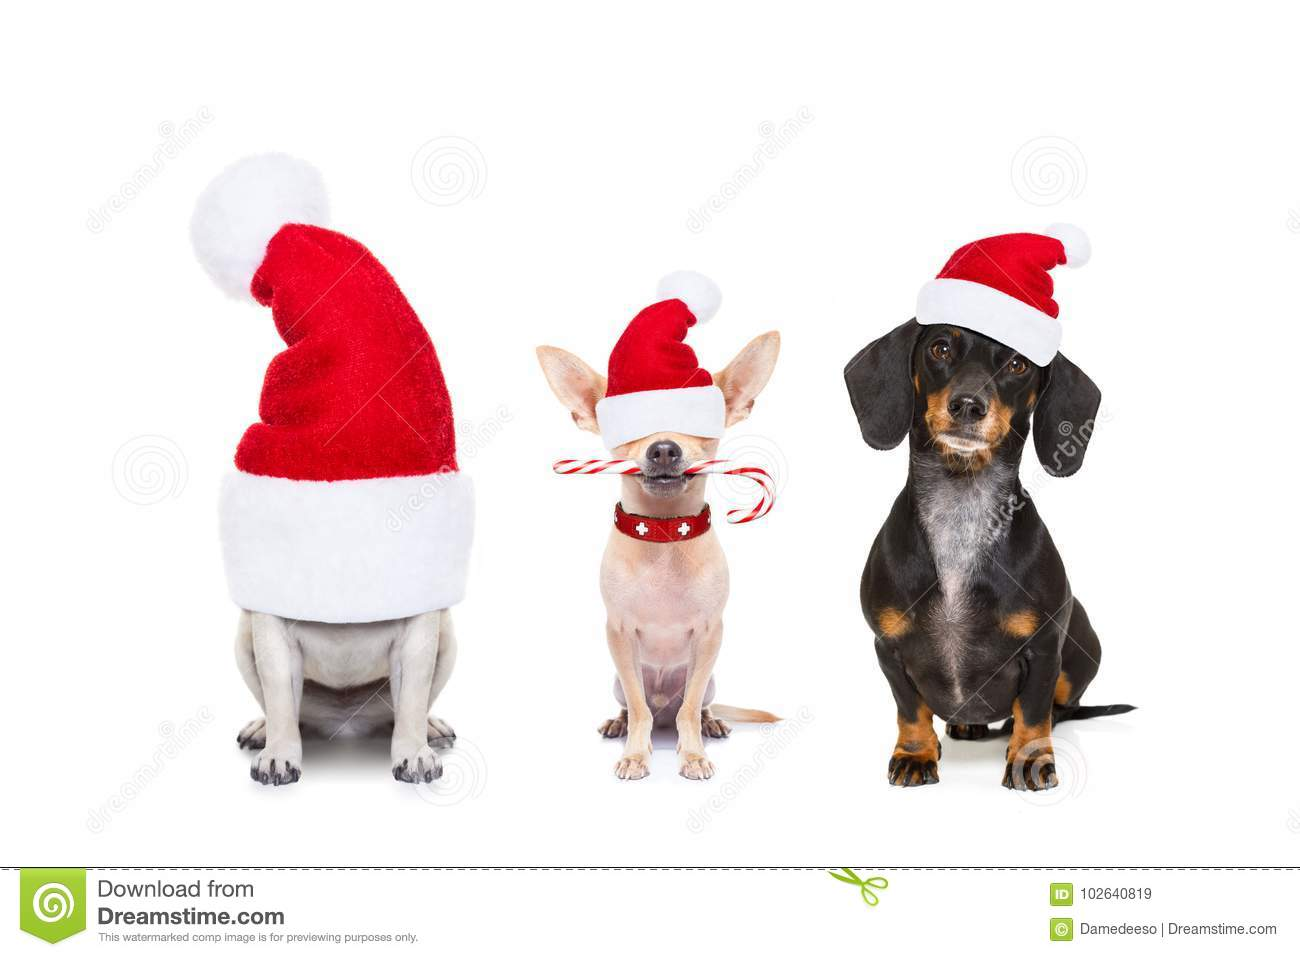 Row Of Dogs On Christmas Holidays Stock Image - Image of celebration ... c95ff90ed1a0